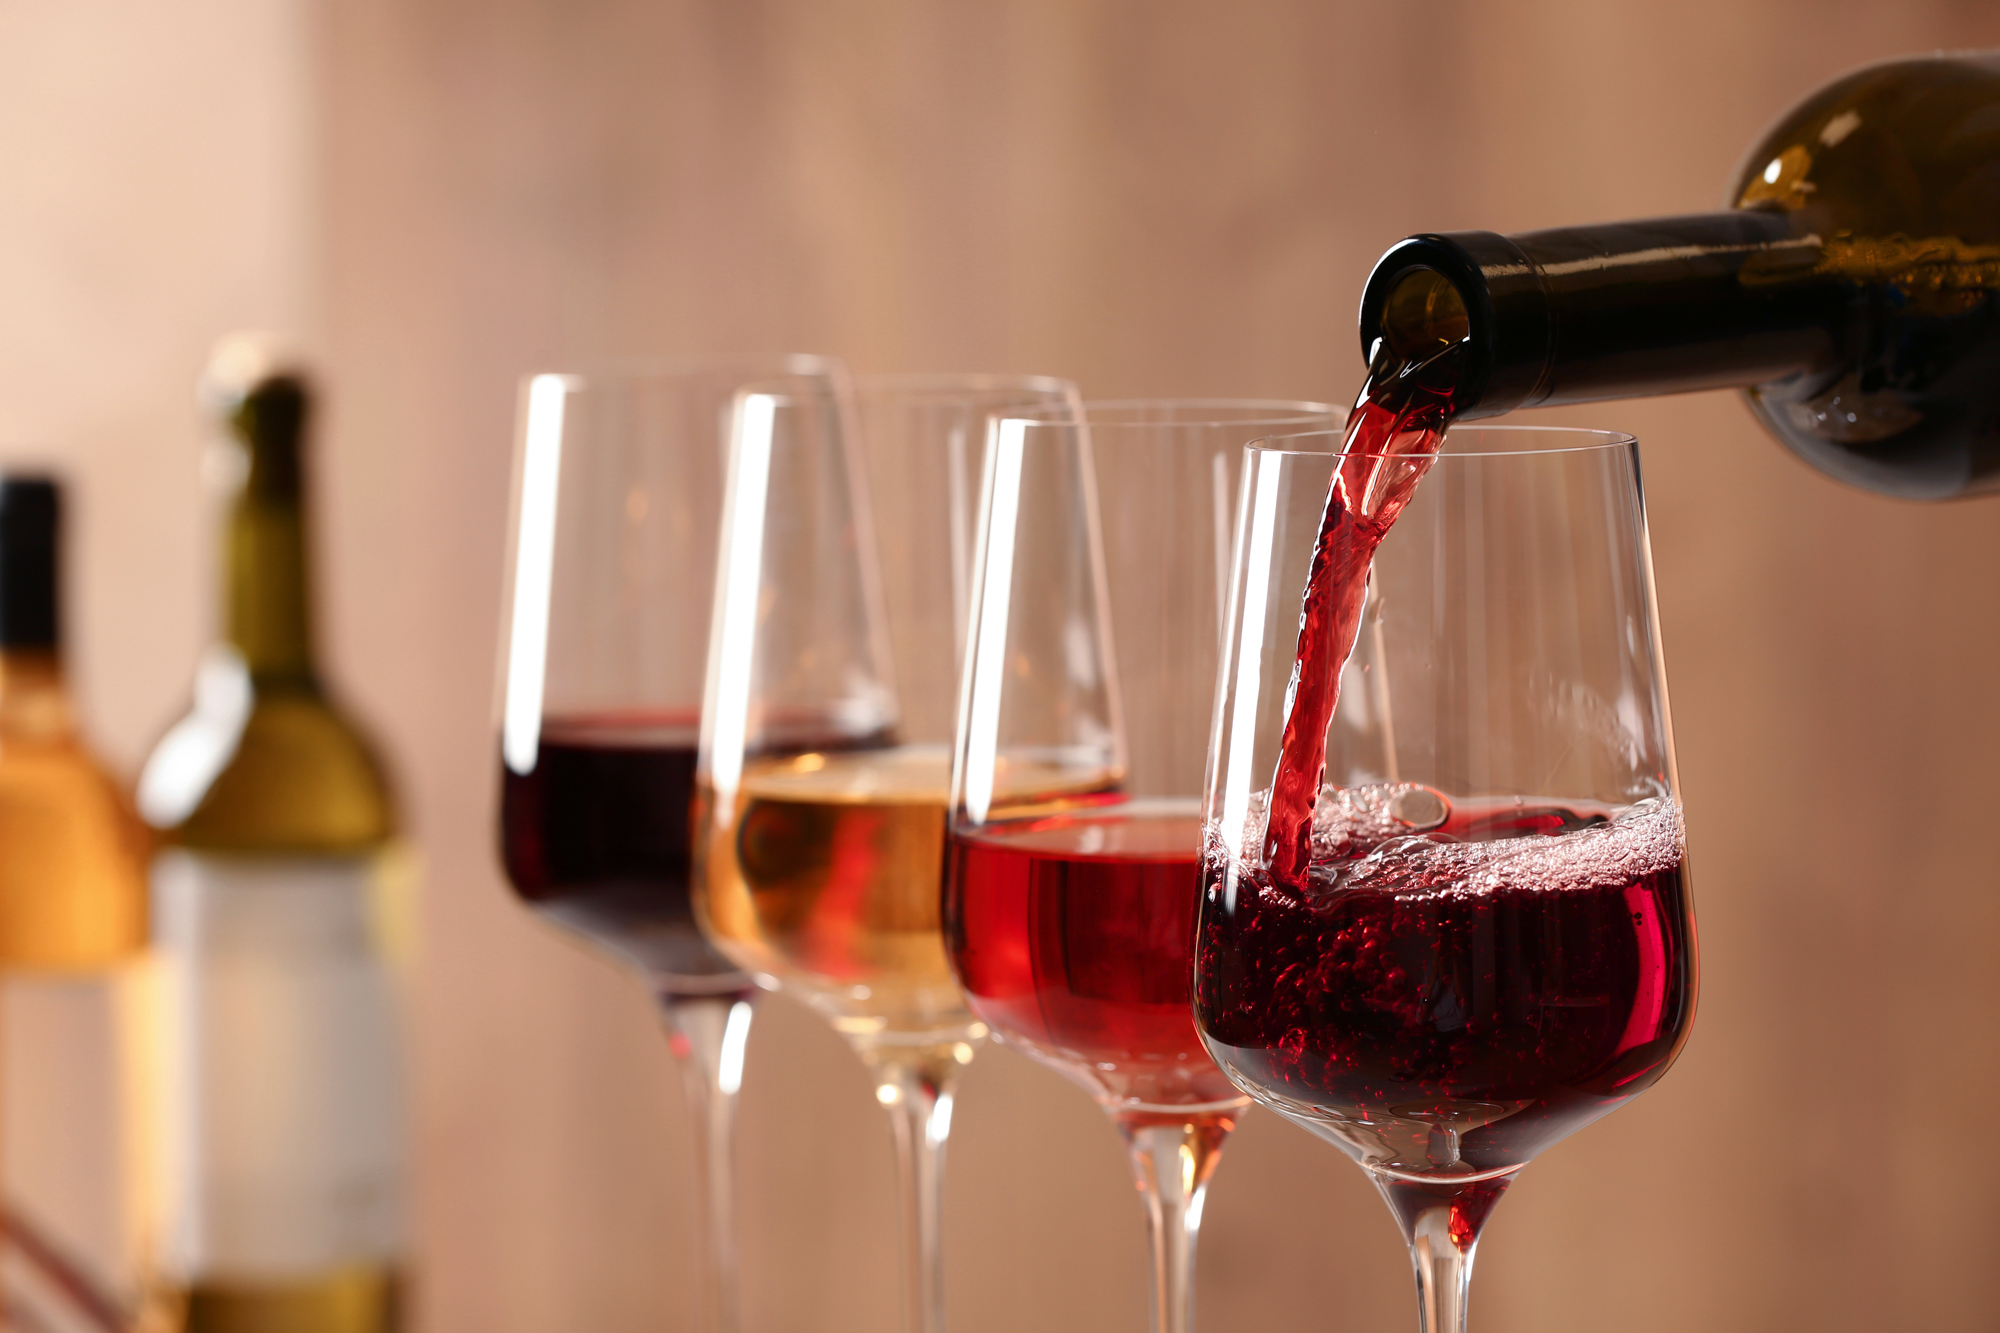 The Best Affordable Imported Wines from All Over the World | Food & Wine